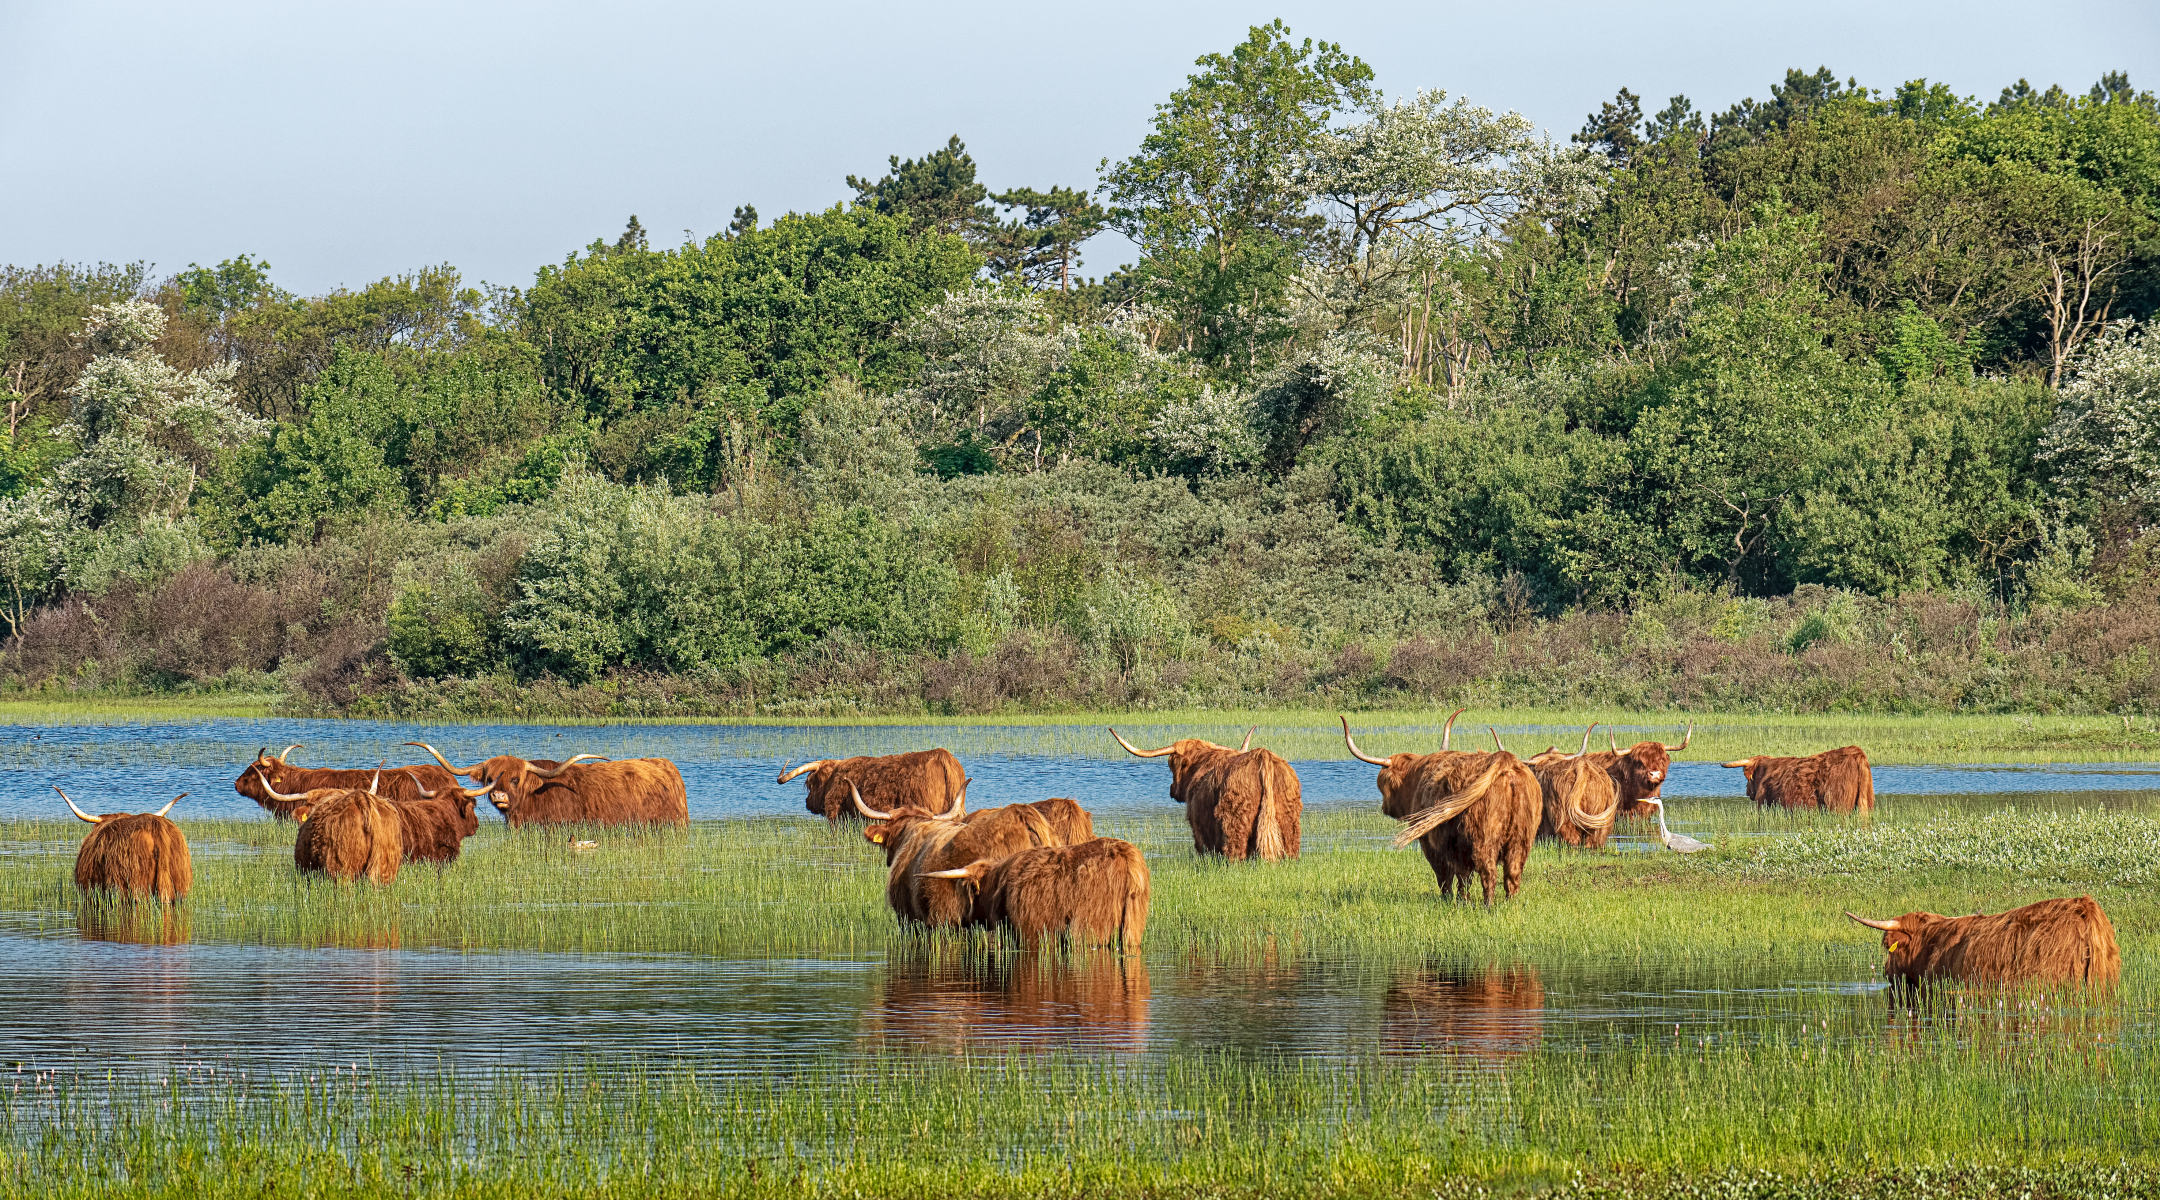 highland cattle seeking relief from heat in pond